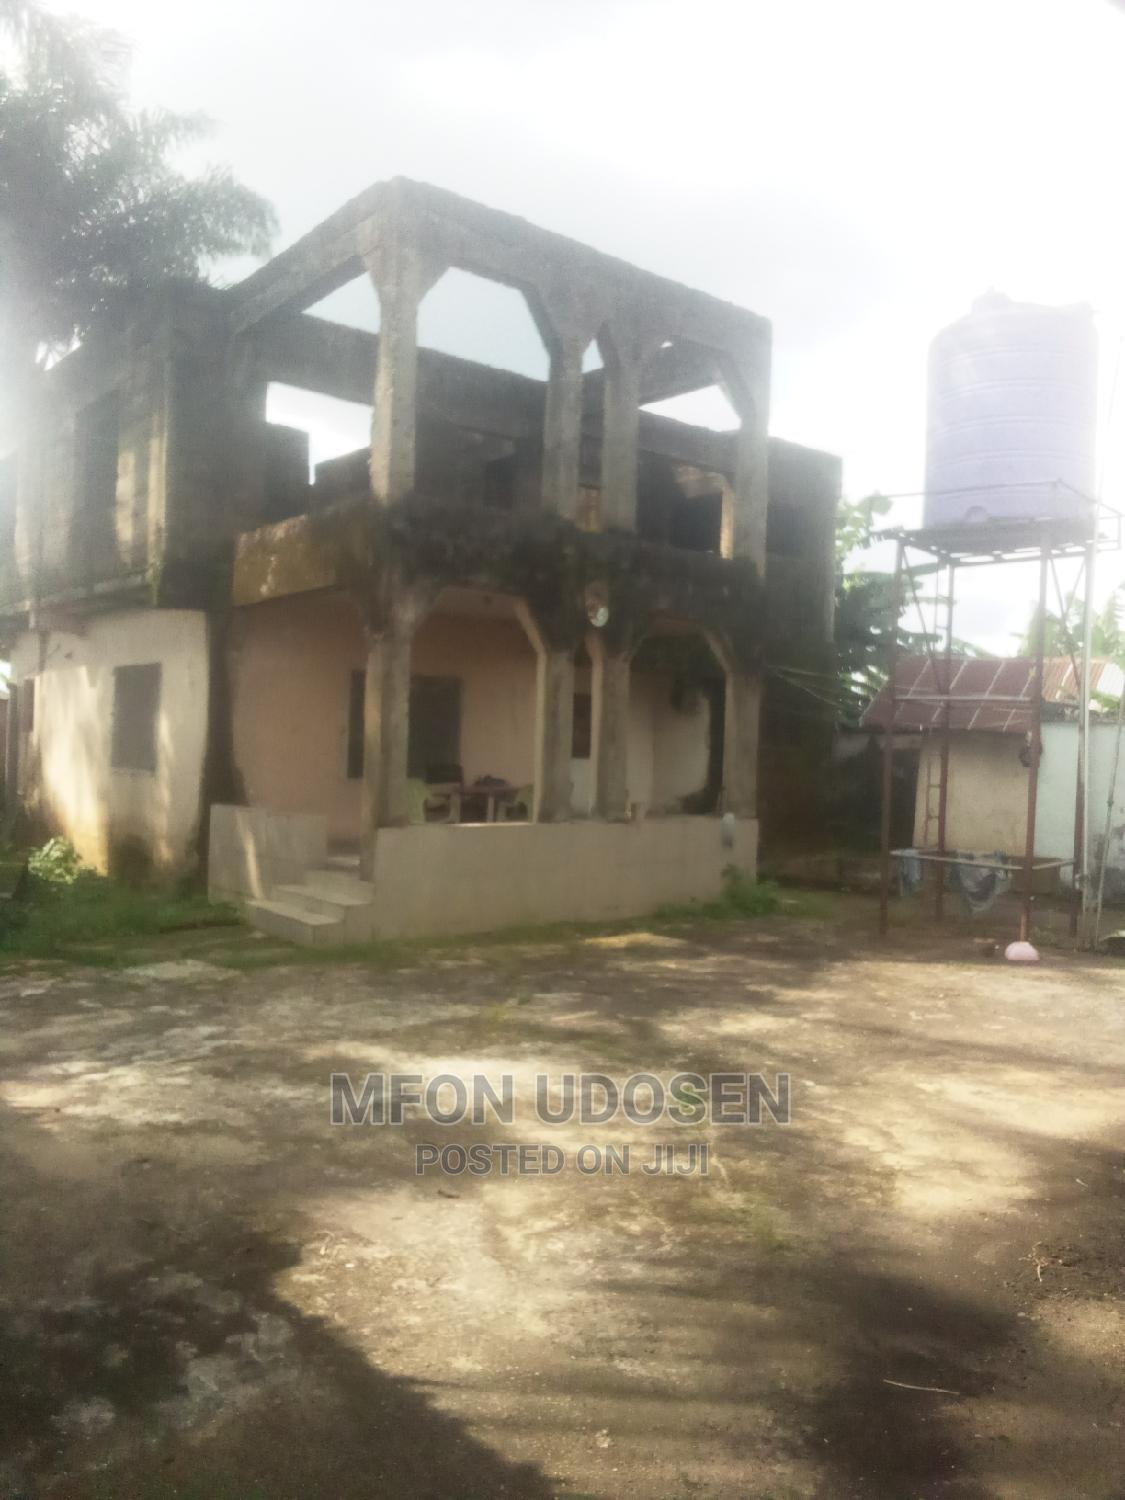 9bdrm Bungalow in Civic Attorneys, Uyo for Sale | Houses & Apartments For Sale for sale in Uyo, Akwa Ibom State, Nigeria